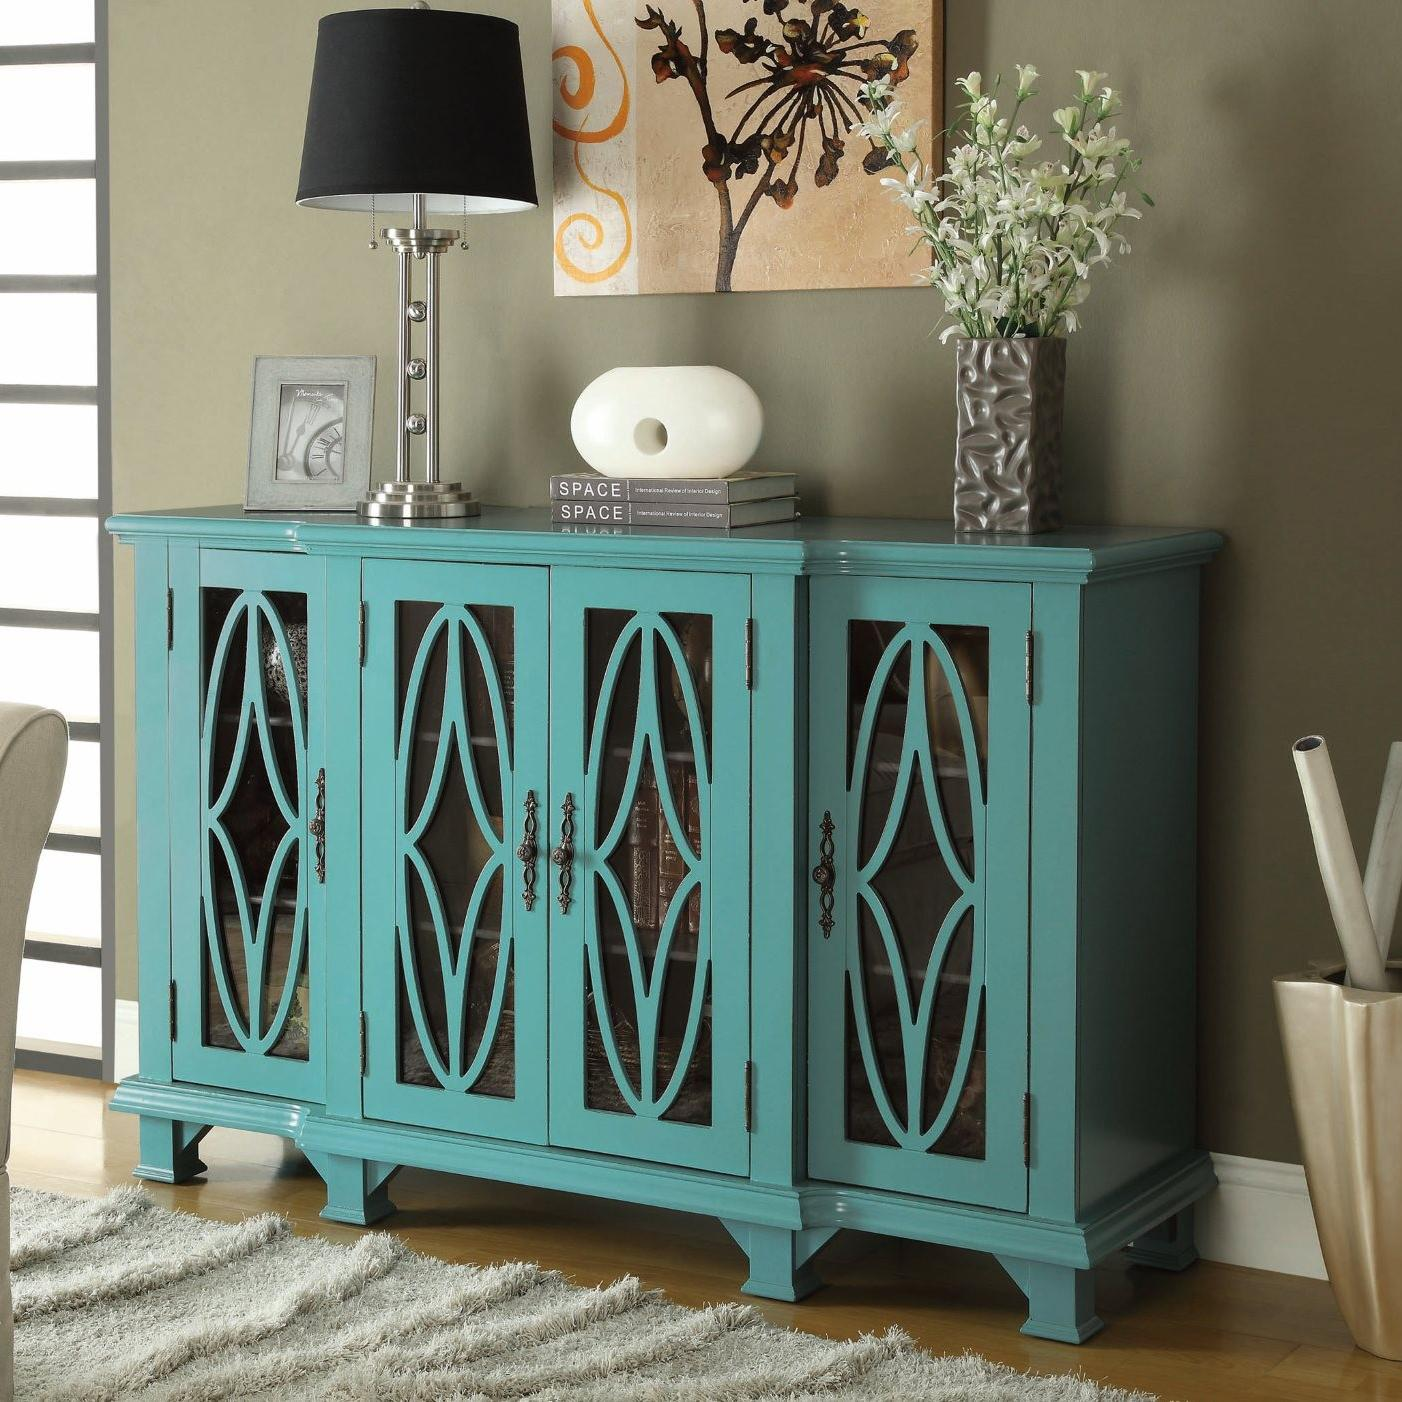 coaster accent cabinets large teal cabinet with glass doors products color table clear plastic tablecloth bar dining set turquoise sofa farm coffee west elm white desk small round